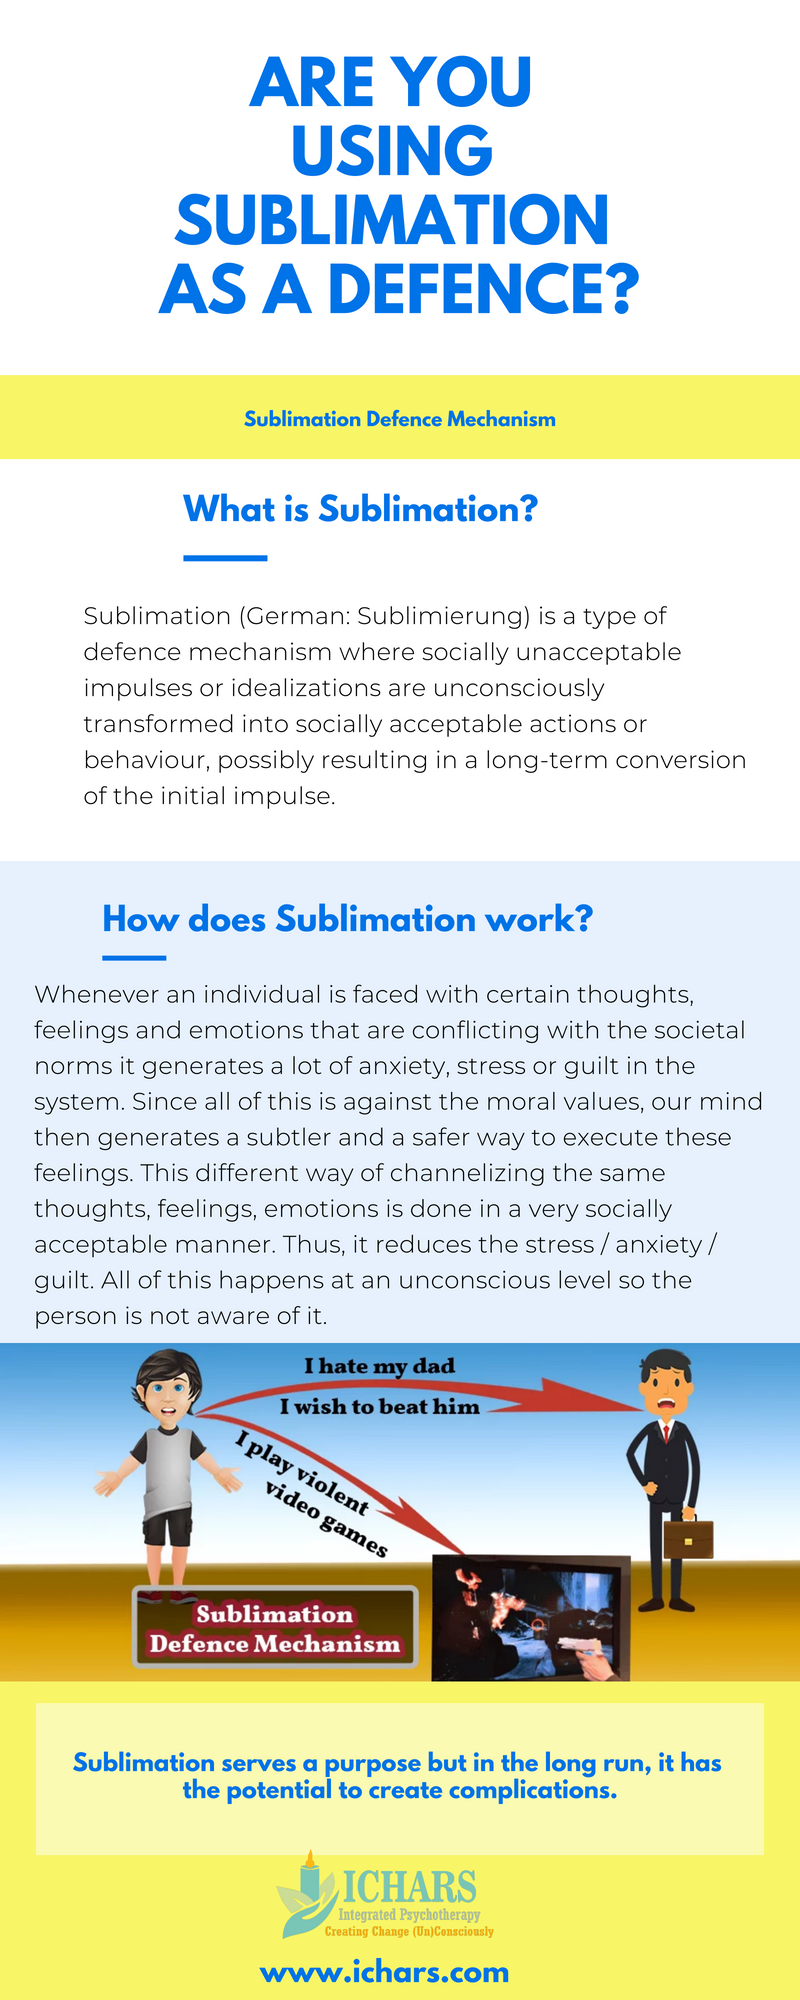 Sublimation Psychological Defense Mechanism